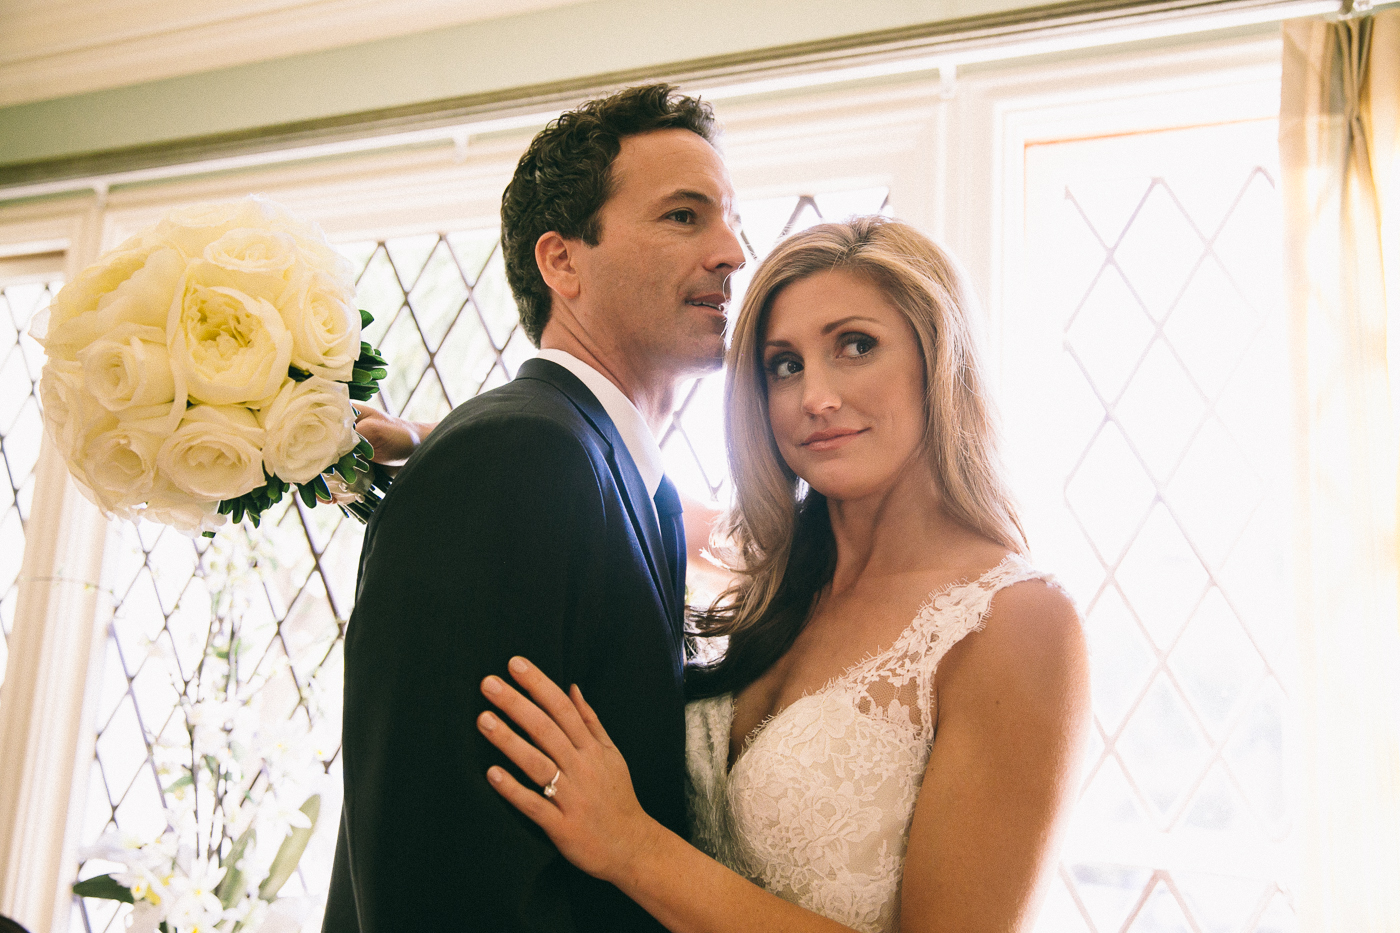 WEDDING_LEAF_PHOTOGRAPHY_DARLINGTON_HOUSE_LA_JOLLA_CATAMARAN_HOTEL_KIM_&_BOB_WED_2013_7X9A5772